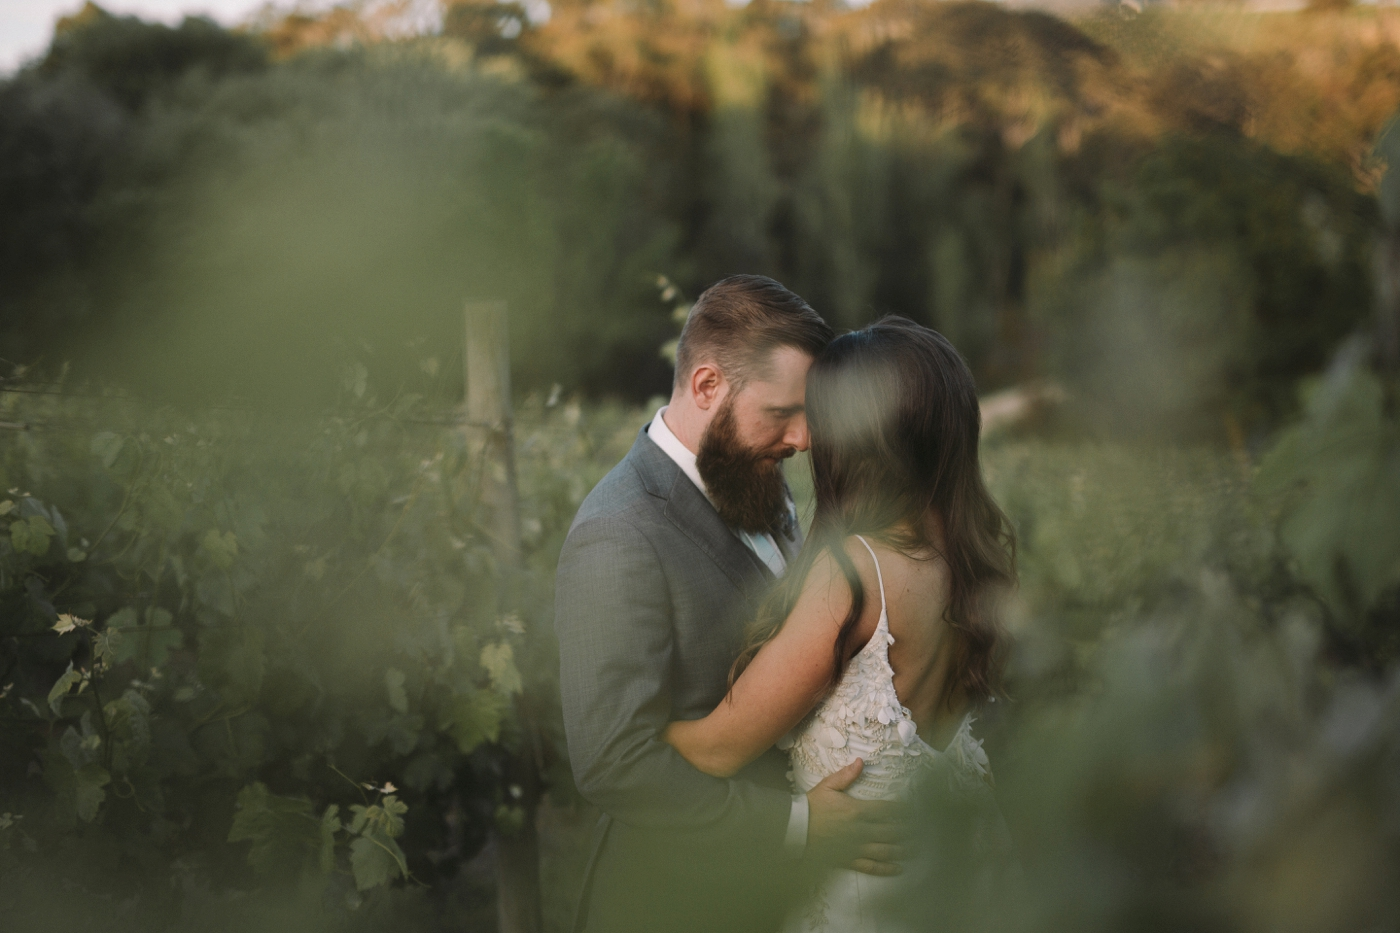 Maddy & Wes - K1 by Geoff Hardy Wedding - Adelaide Wedding Photographer - Natural wedding photography in Adelaide - Katherine Schultz_0067.jpg